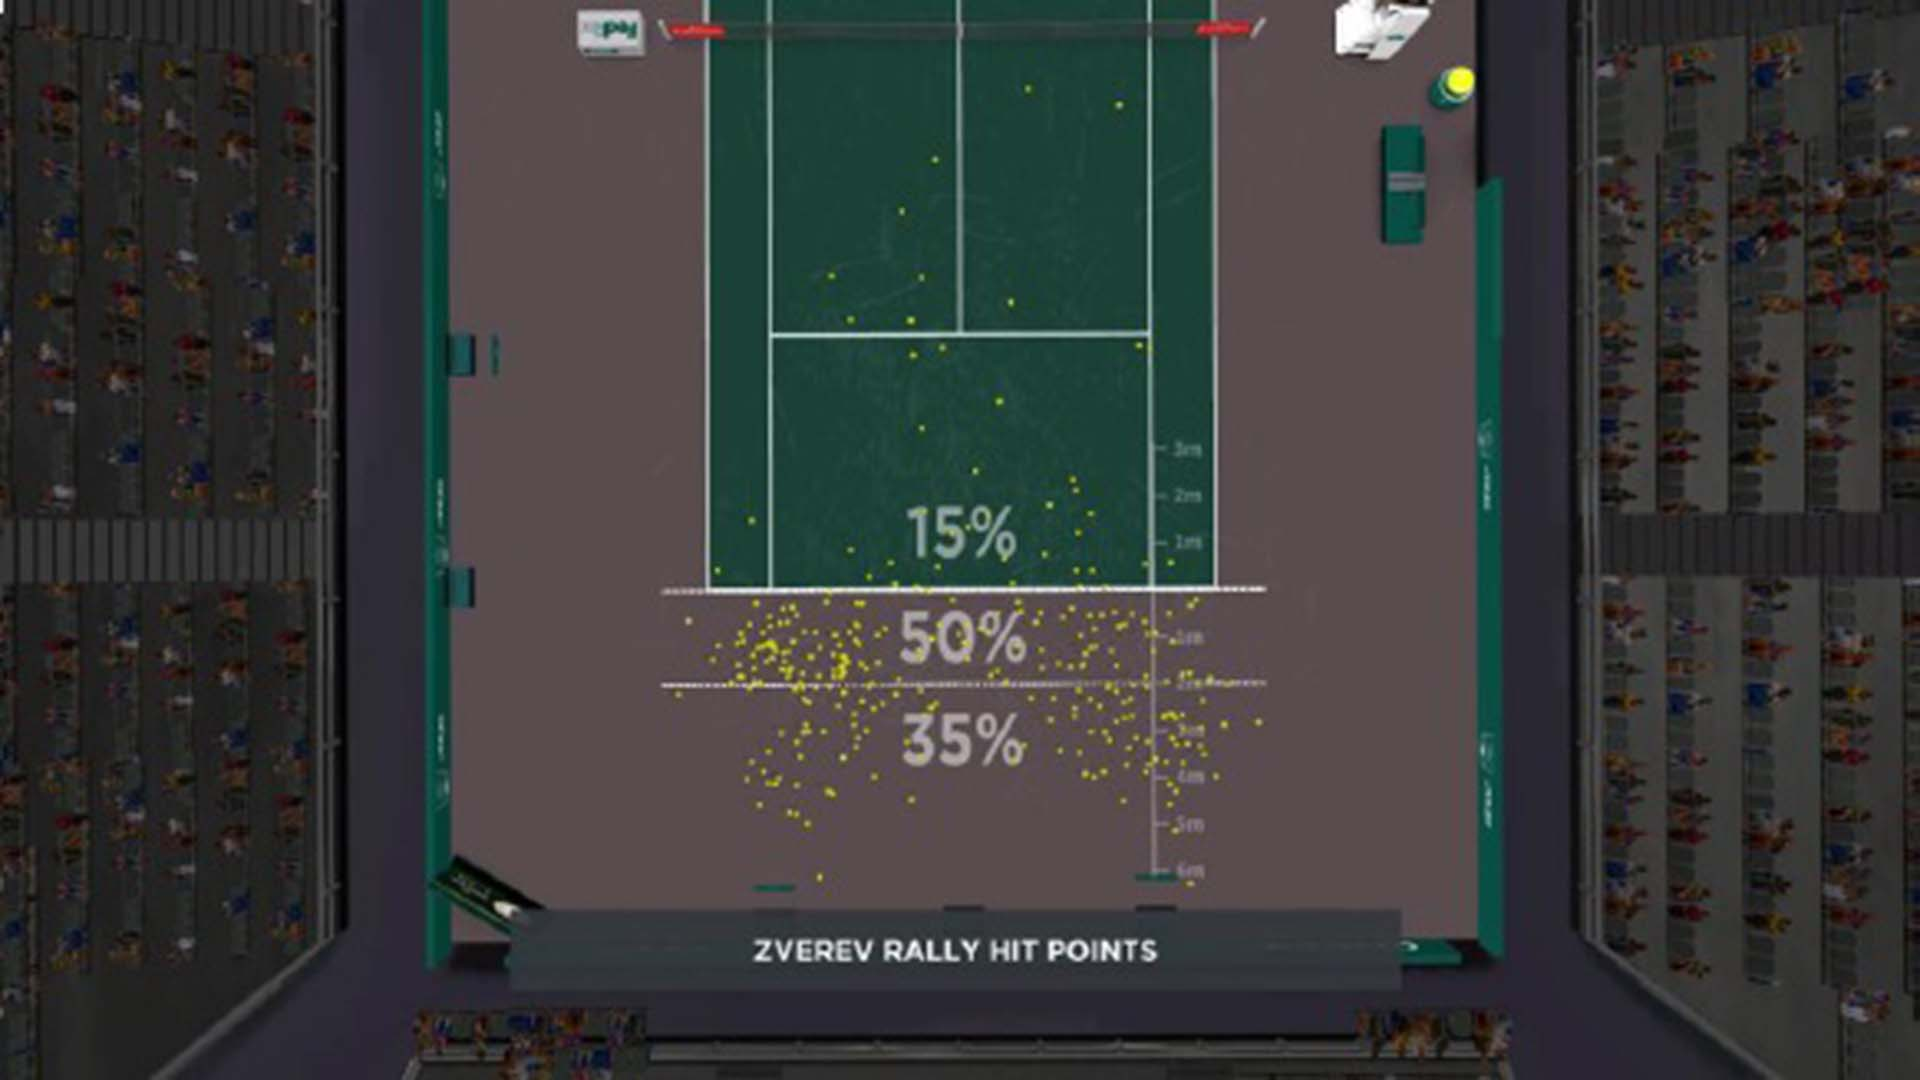 Zverev Paris 2020 Final Rally Hit Points